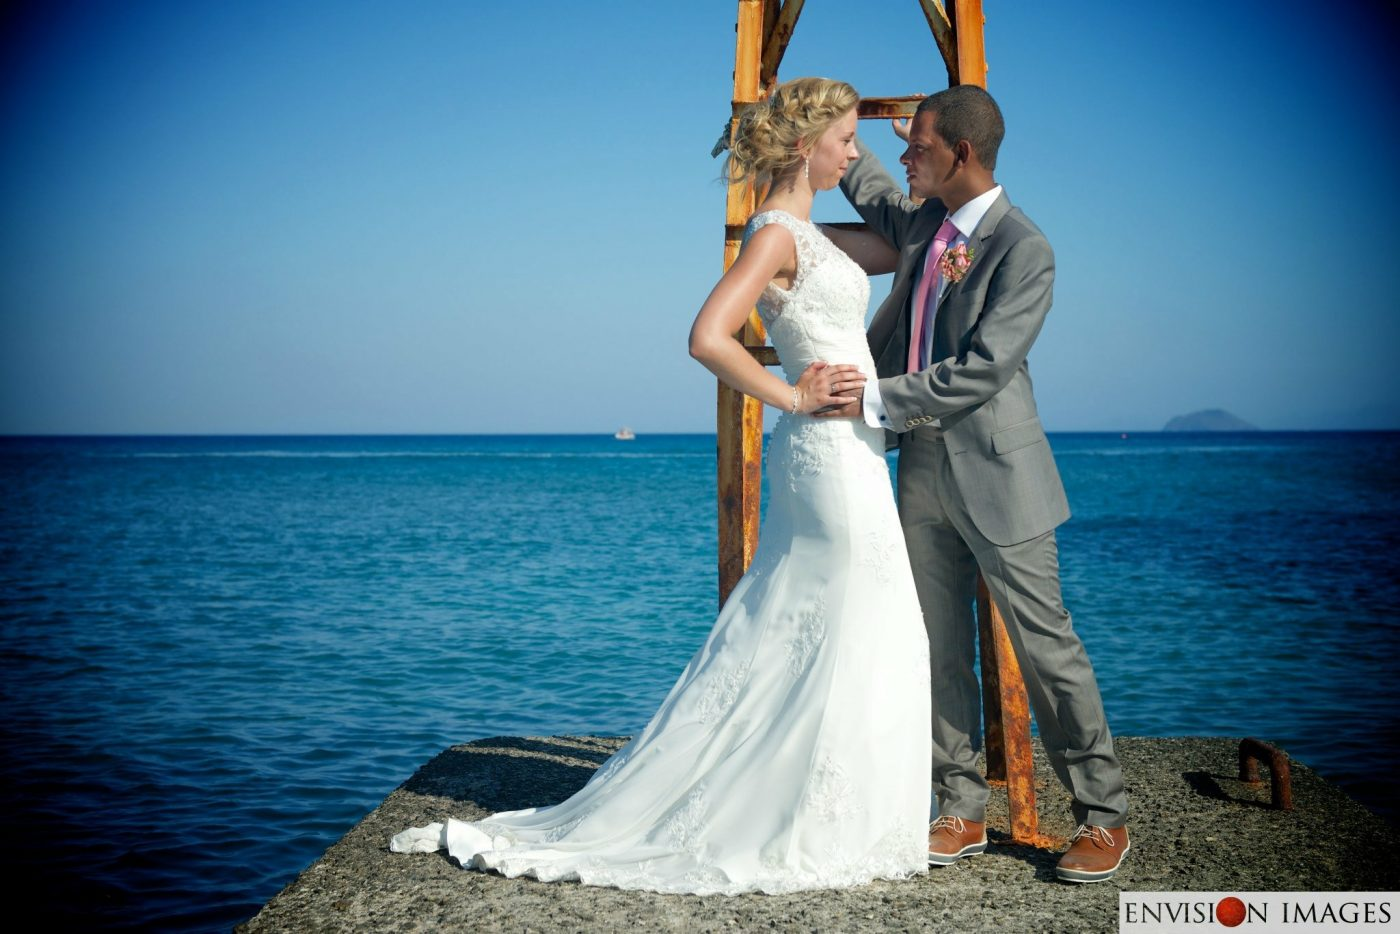 envision images international wedding photographers